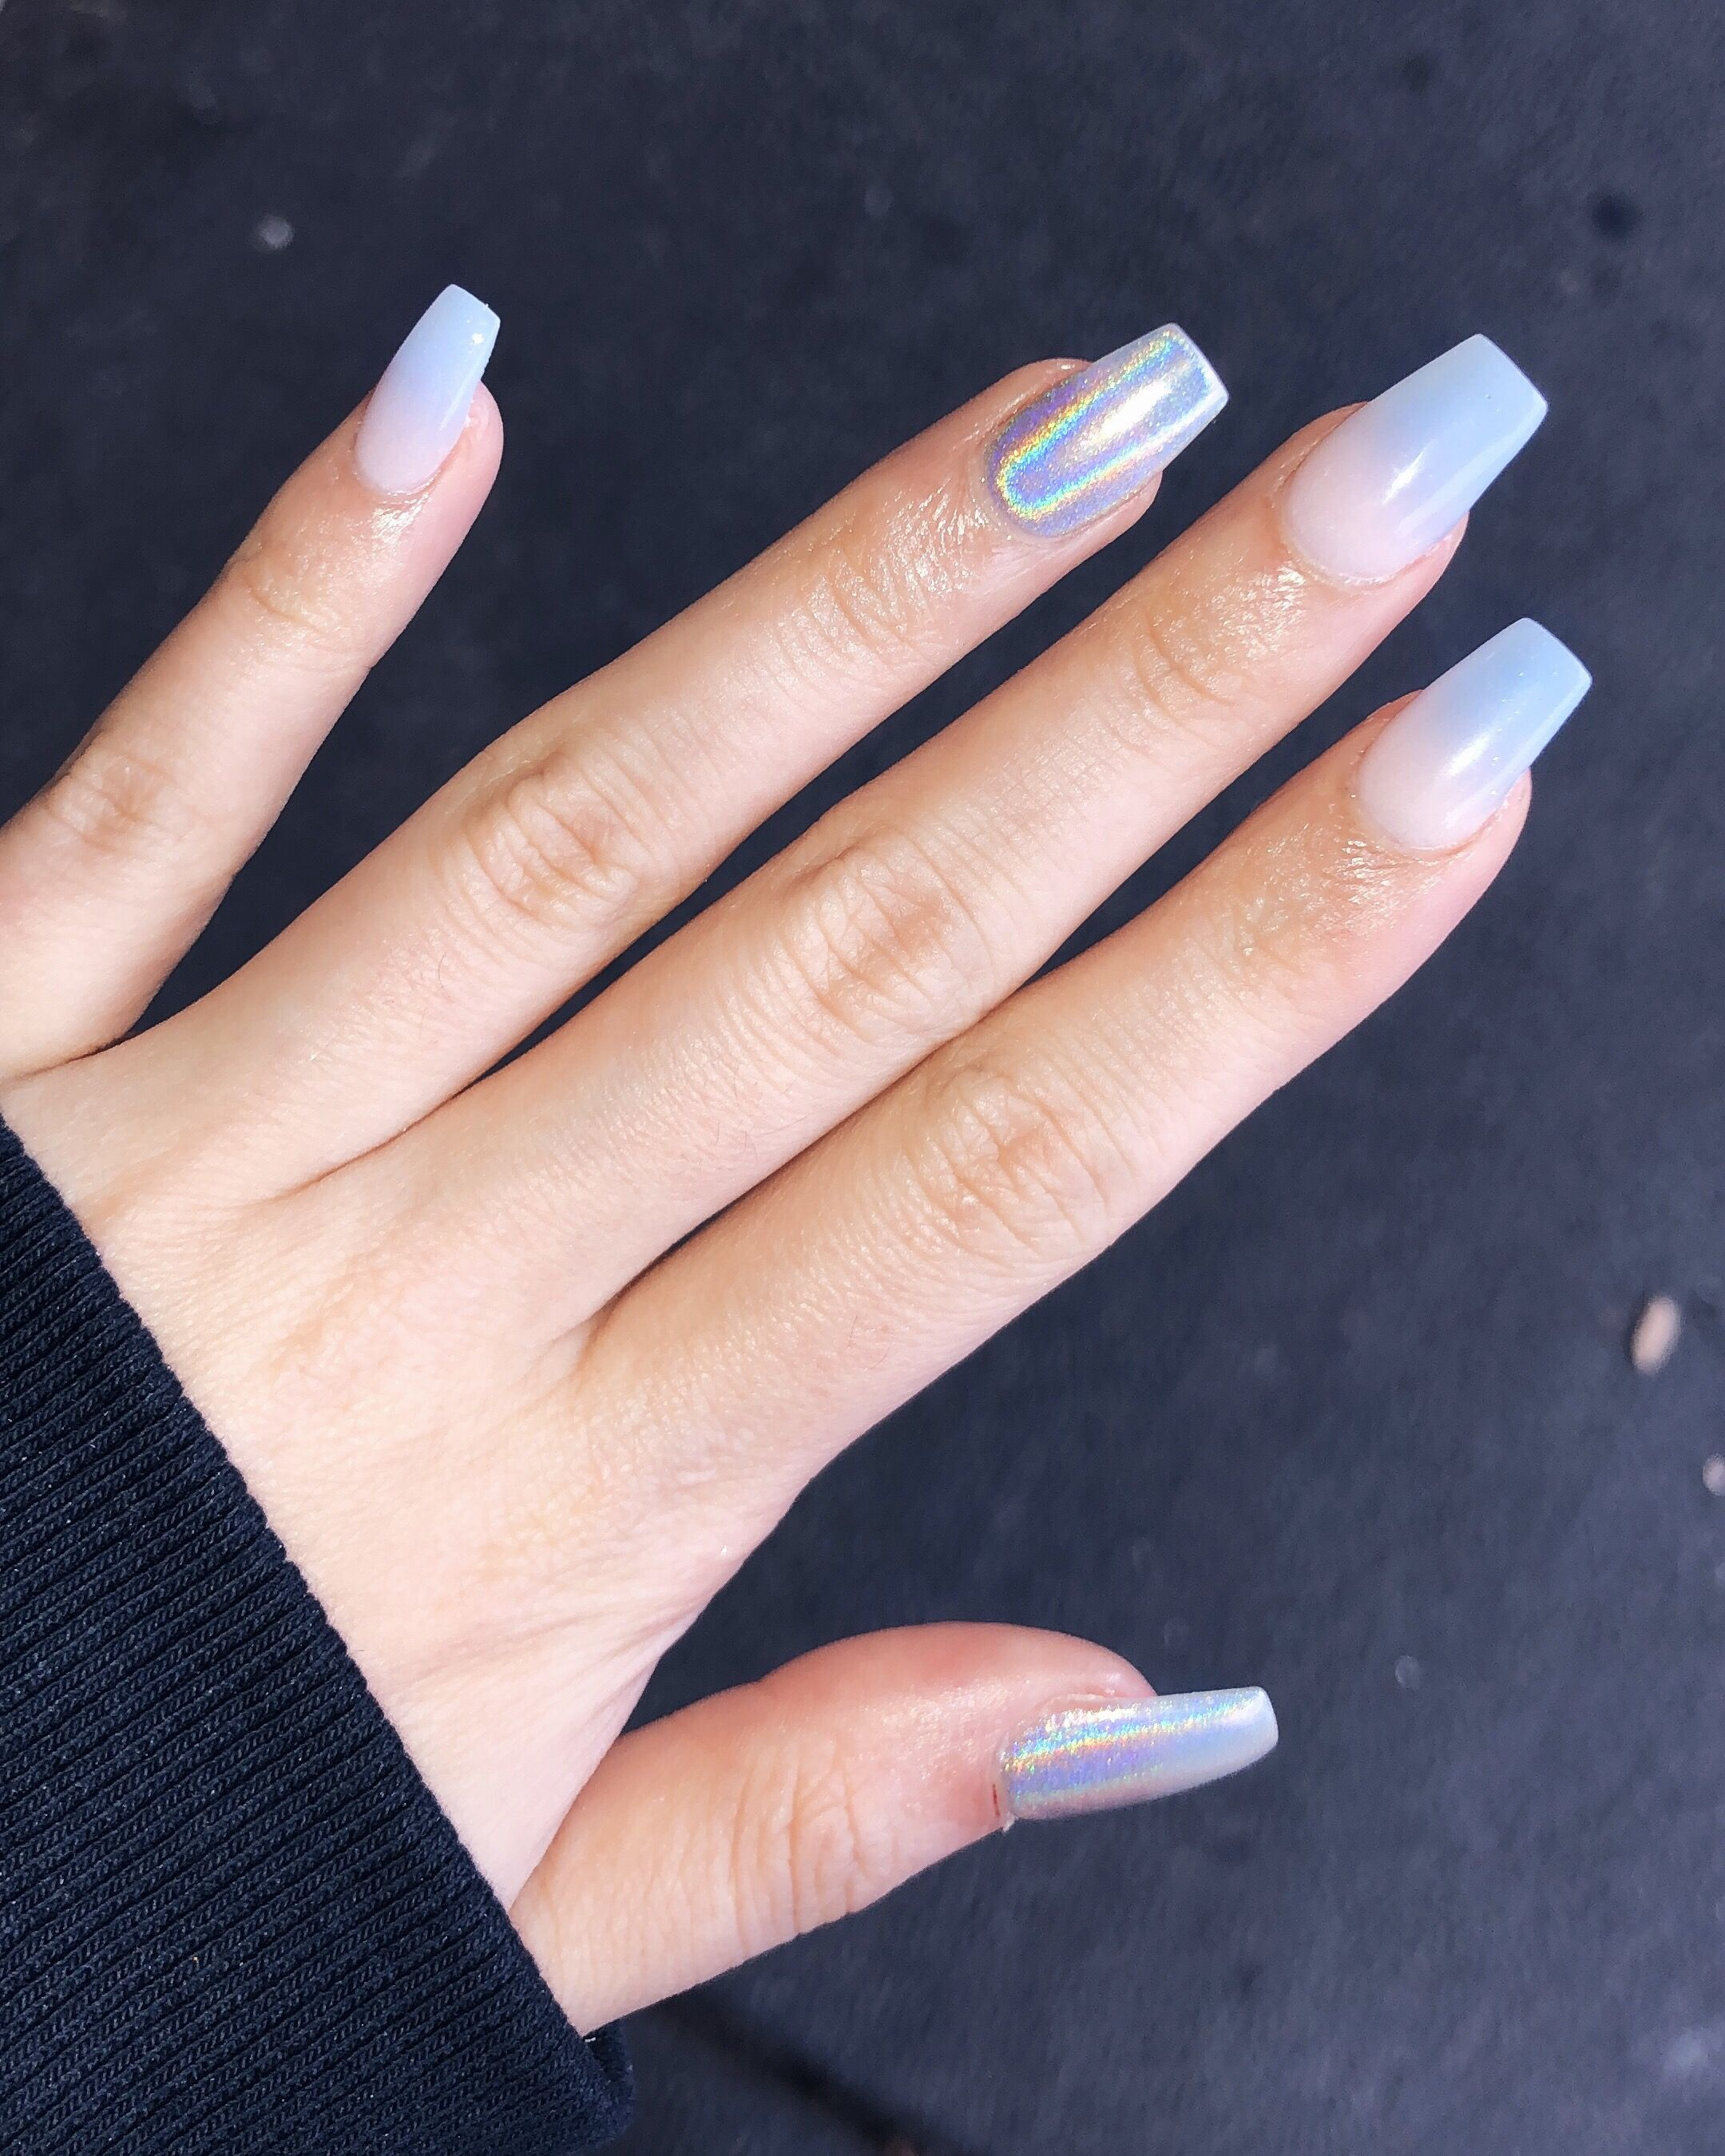 Holographic Ombre Acrylic Nails Celfie Nail Salon Holographic Nails Holographic Nails Acrylic Ombre Acrylic Nails